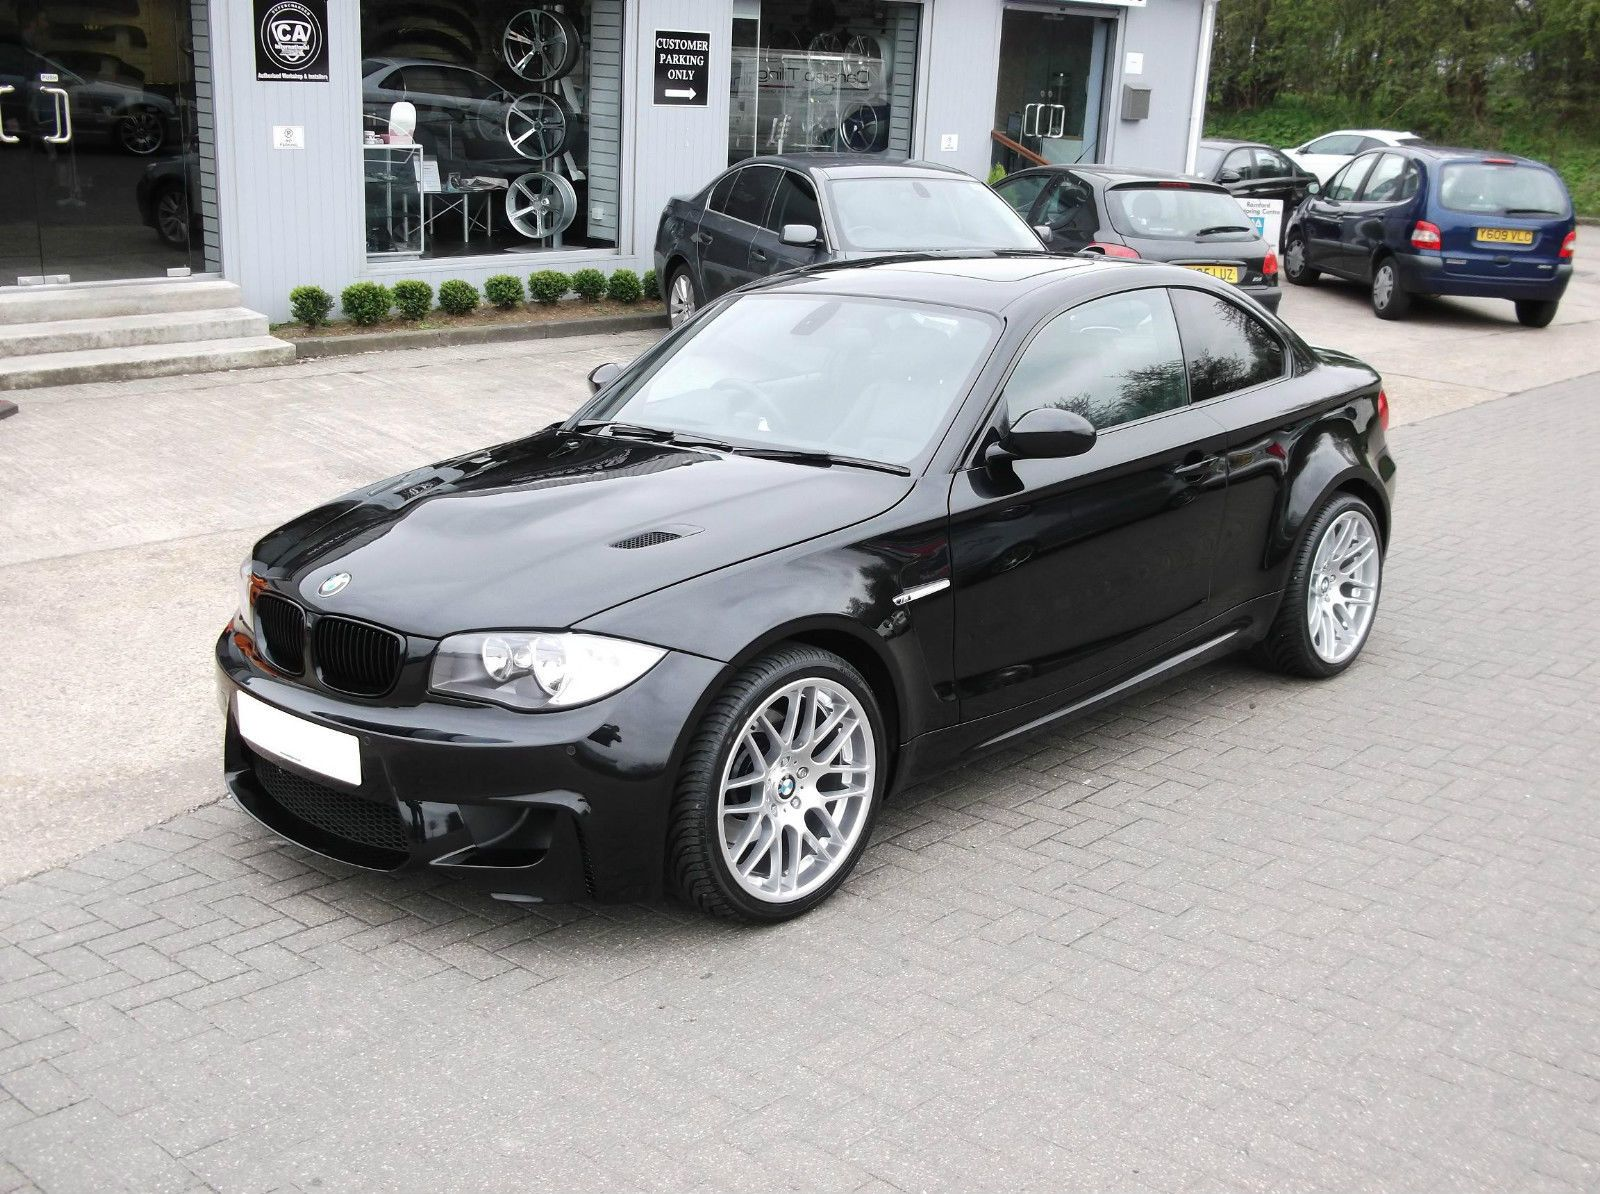 Details About Wide 1m Look Bodykit Body Kit For Bmw 1 Series E82